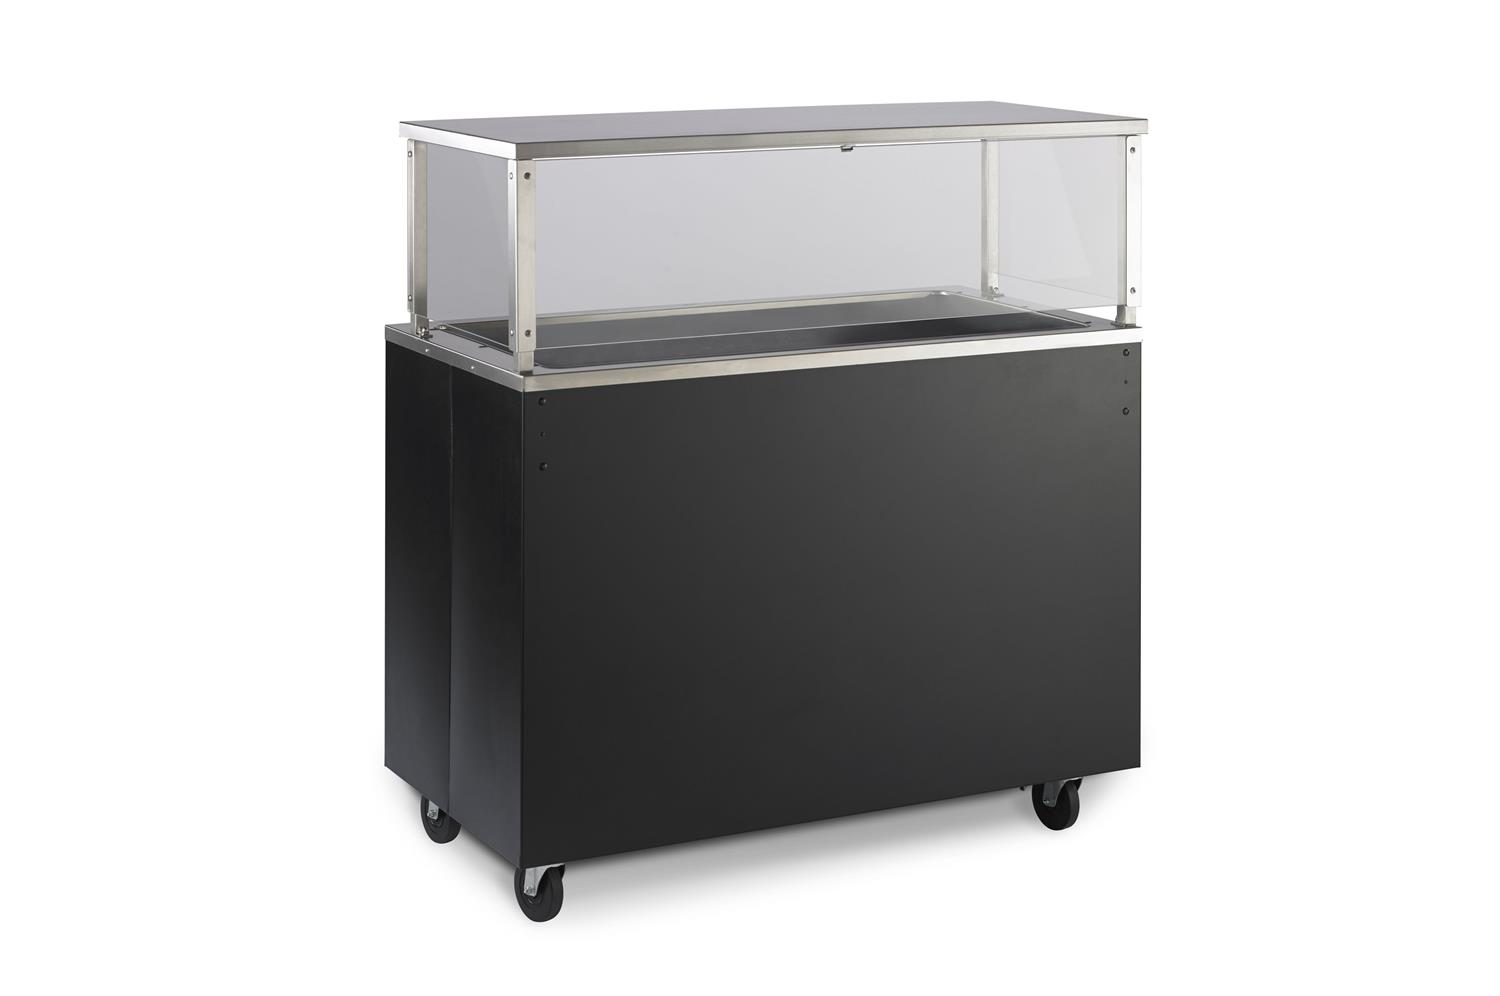 Vollrath 39733A Affordable Portable Cold Food Station - Cafeteria